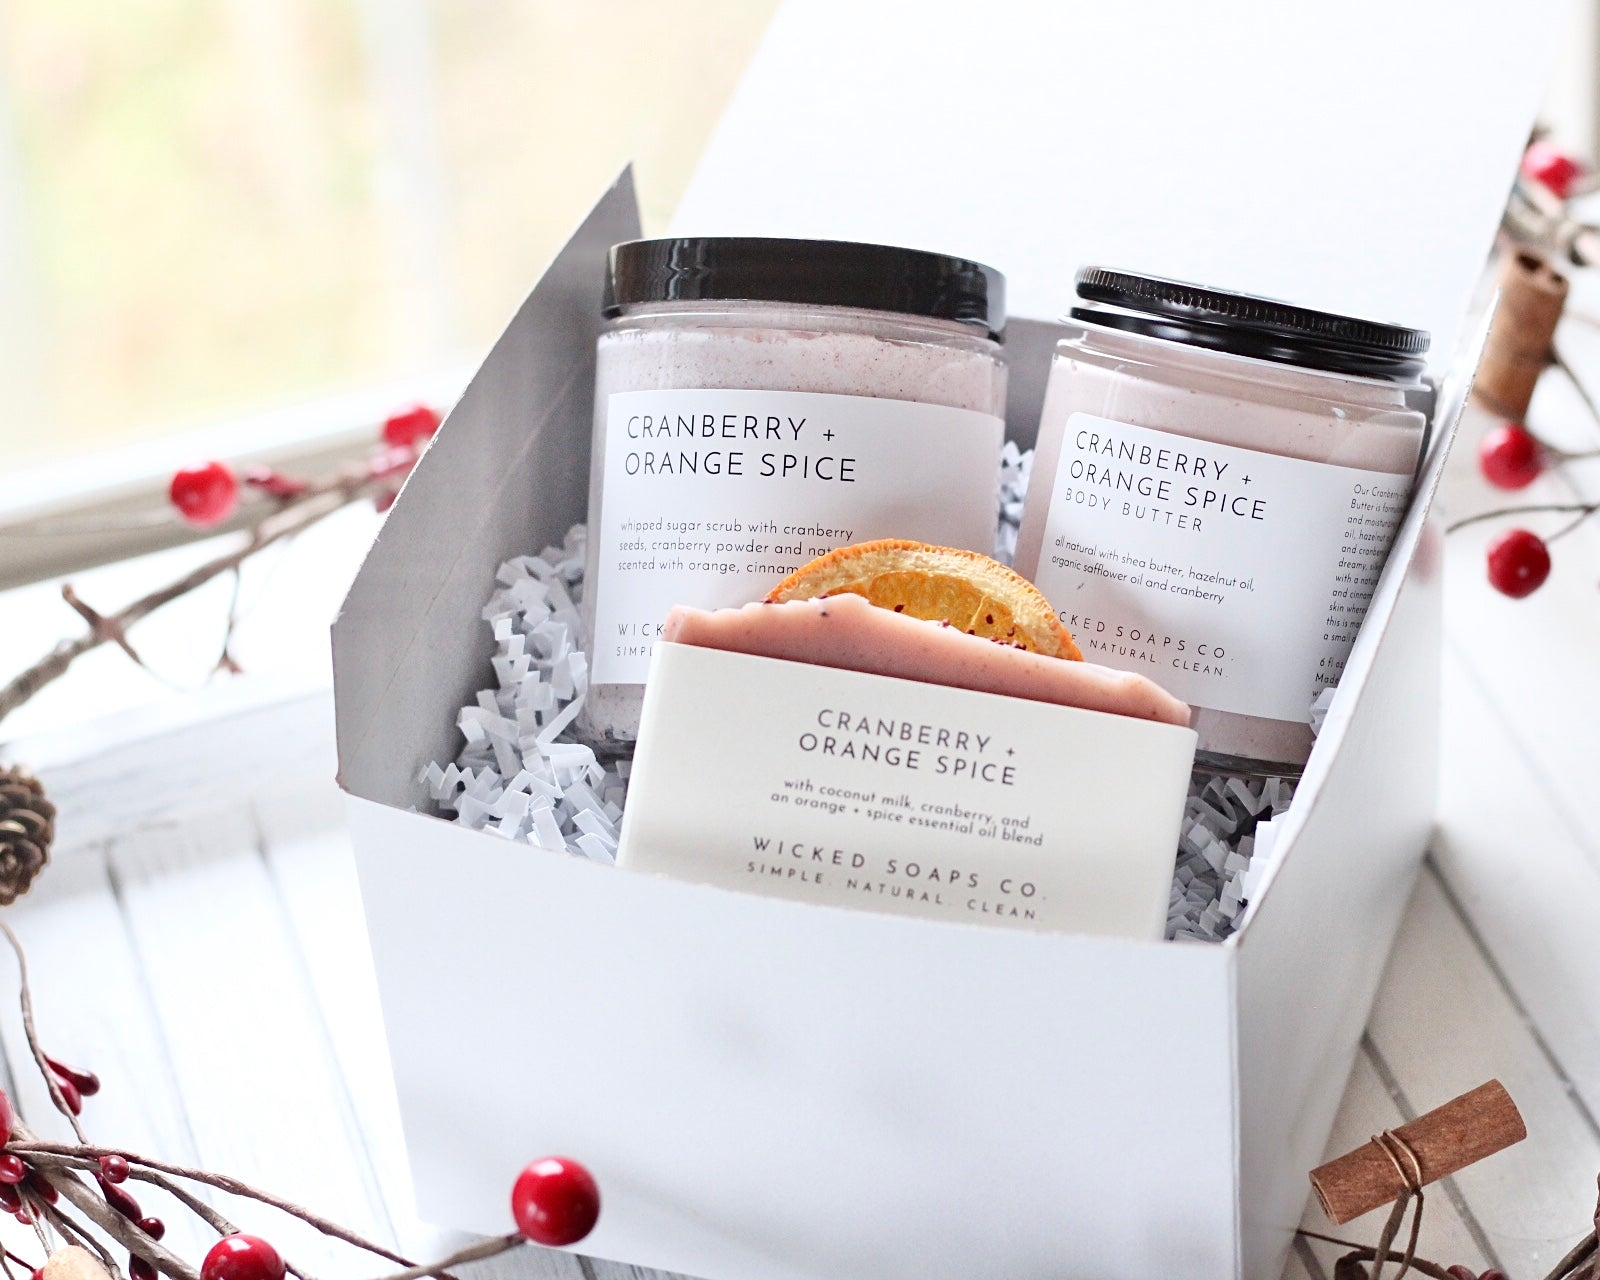 Cranberry + Orange Spice Gift Set